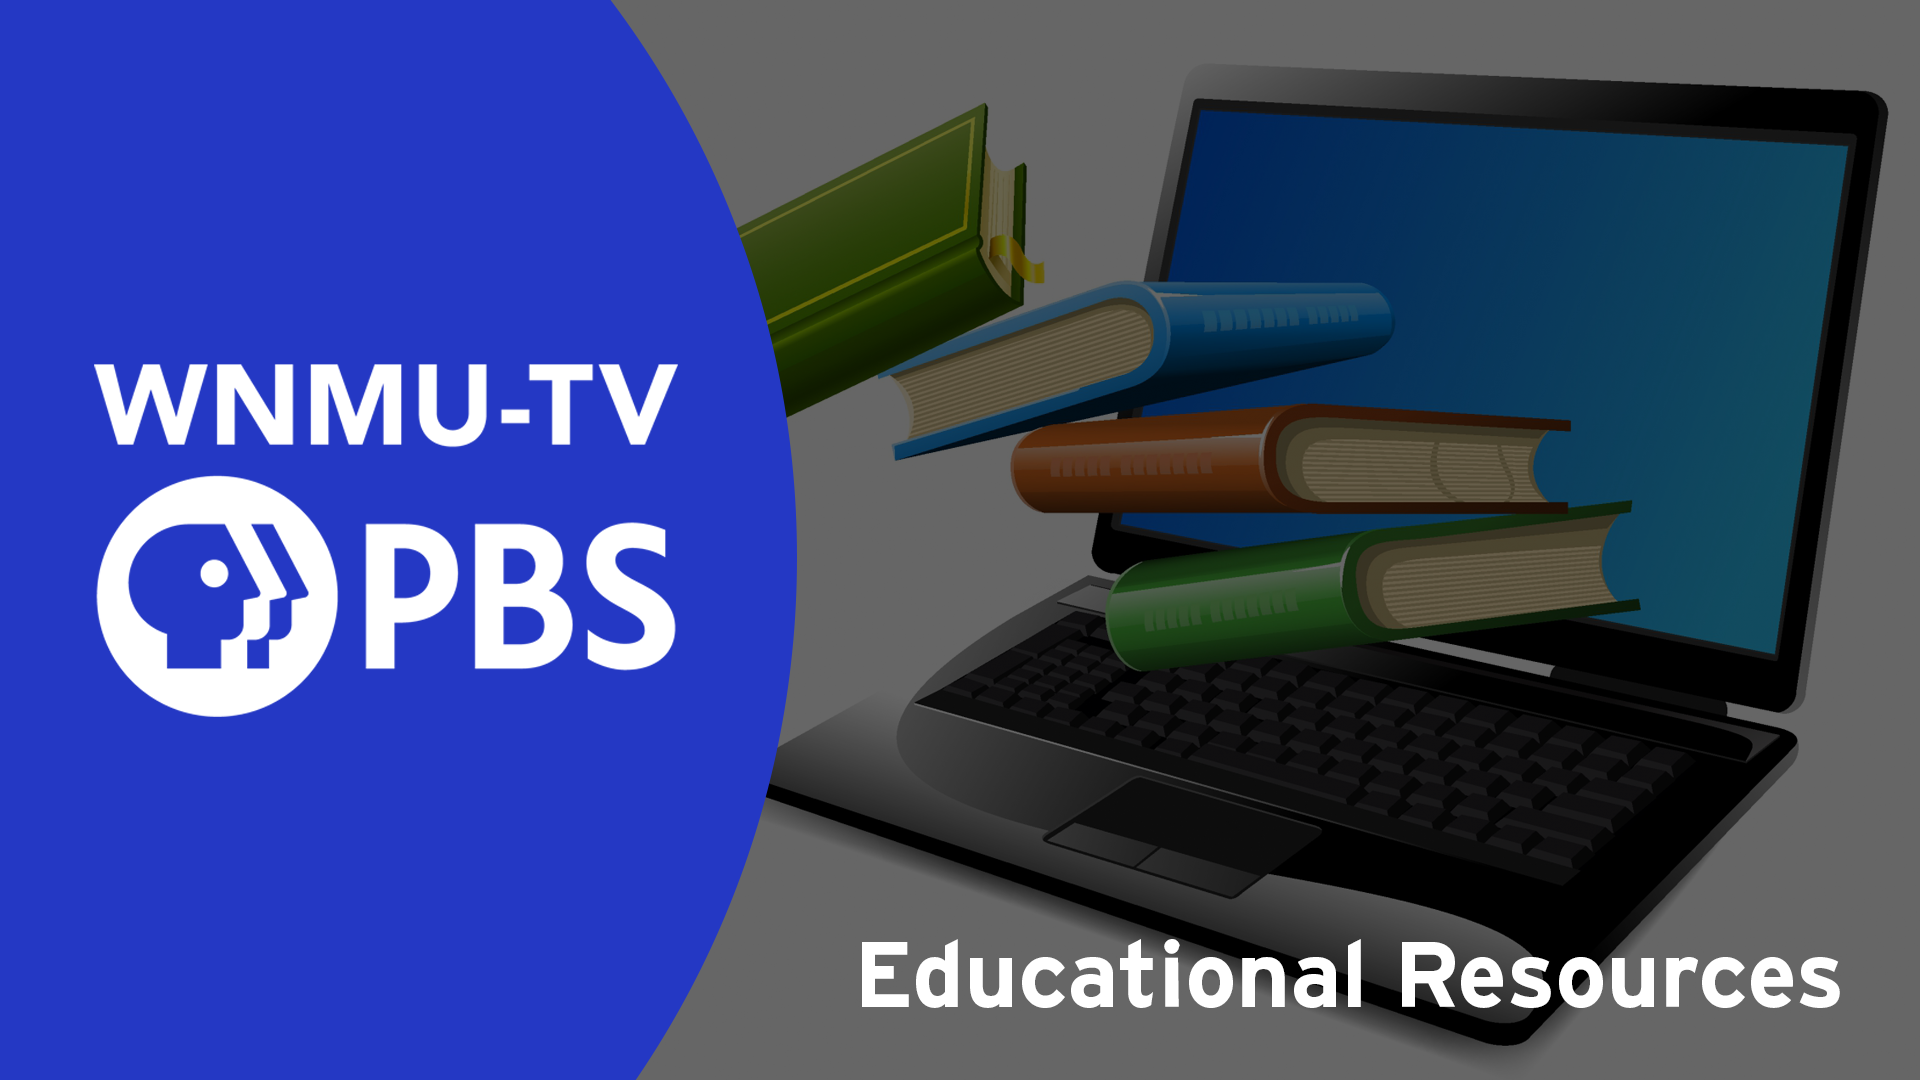 WNMU-TV Resources for At-Home Learning and Education